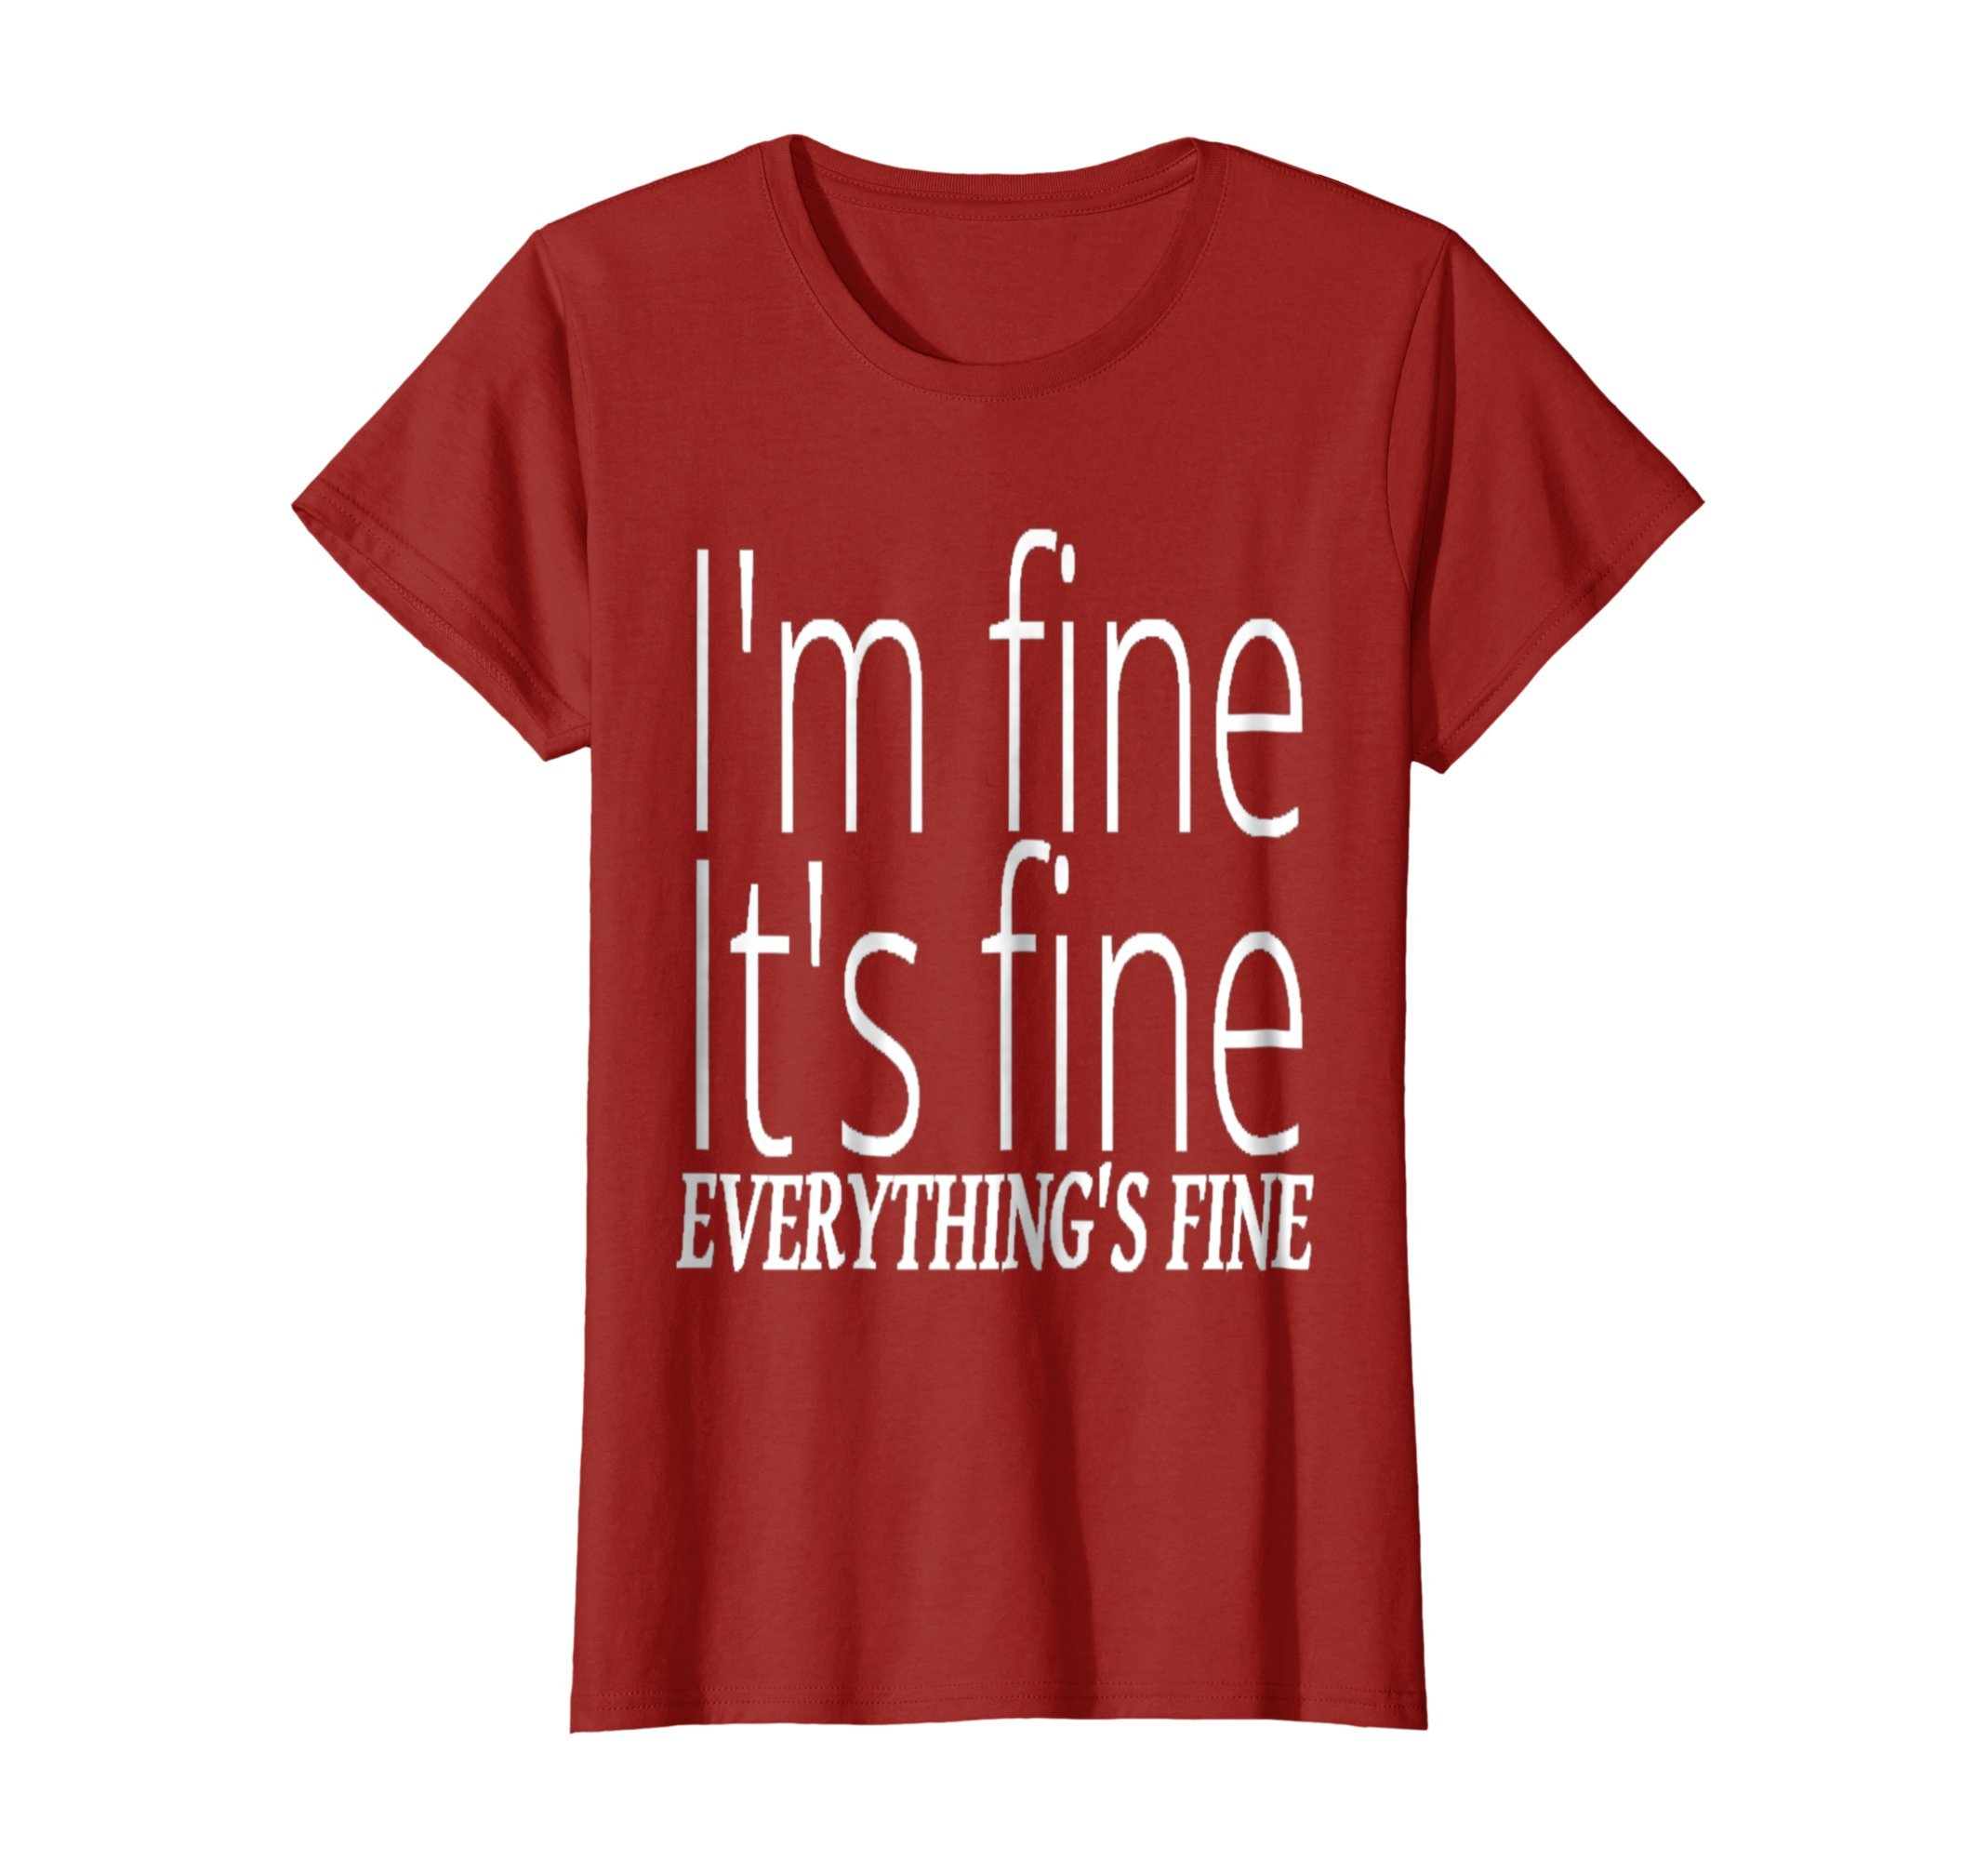 Womens I'm Fine It's Fine Everything's Fine Funny T-Shirt Small Cranberry by Everything is Fine Tees (Image #1)